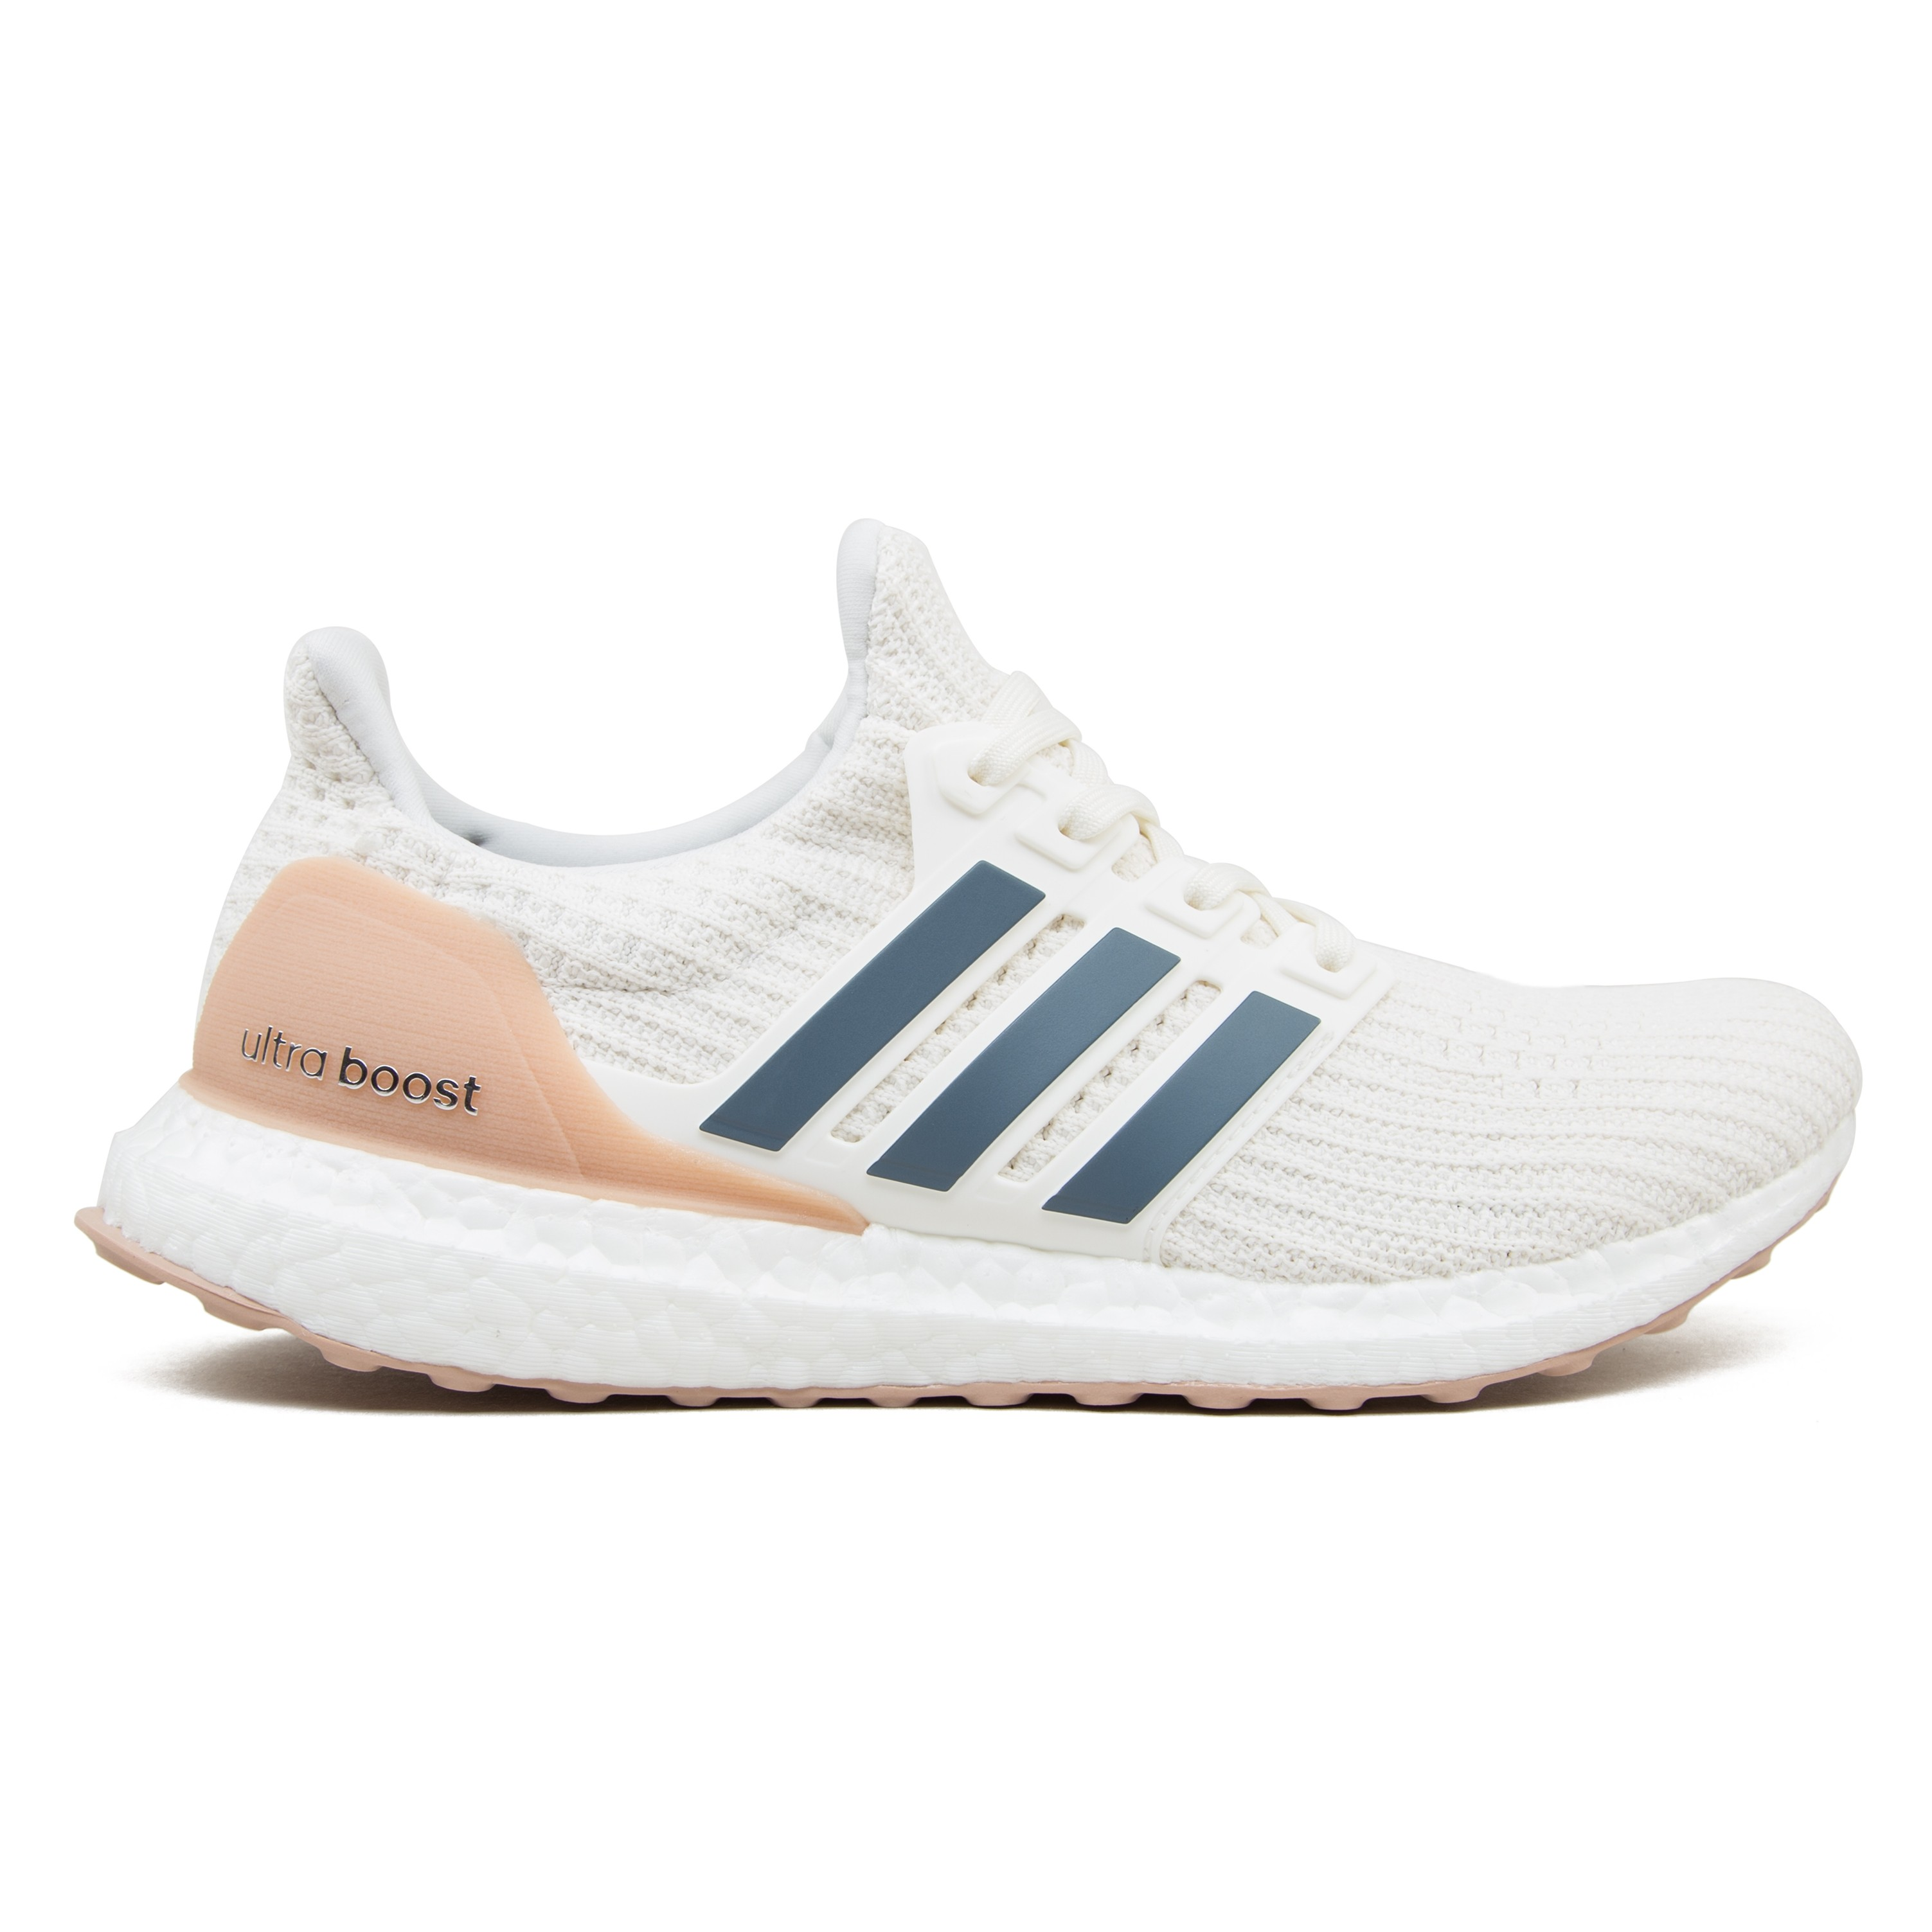 be21e5baa04f6 adidas UltraBOOST 4.0  Show Your Stripes  (Cloud White Tech Ink ...